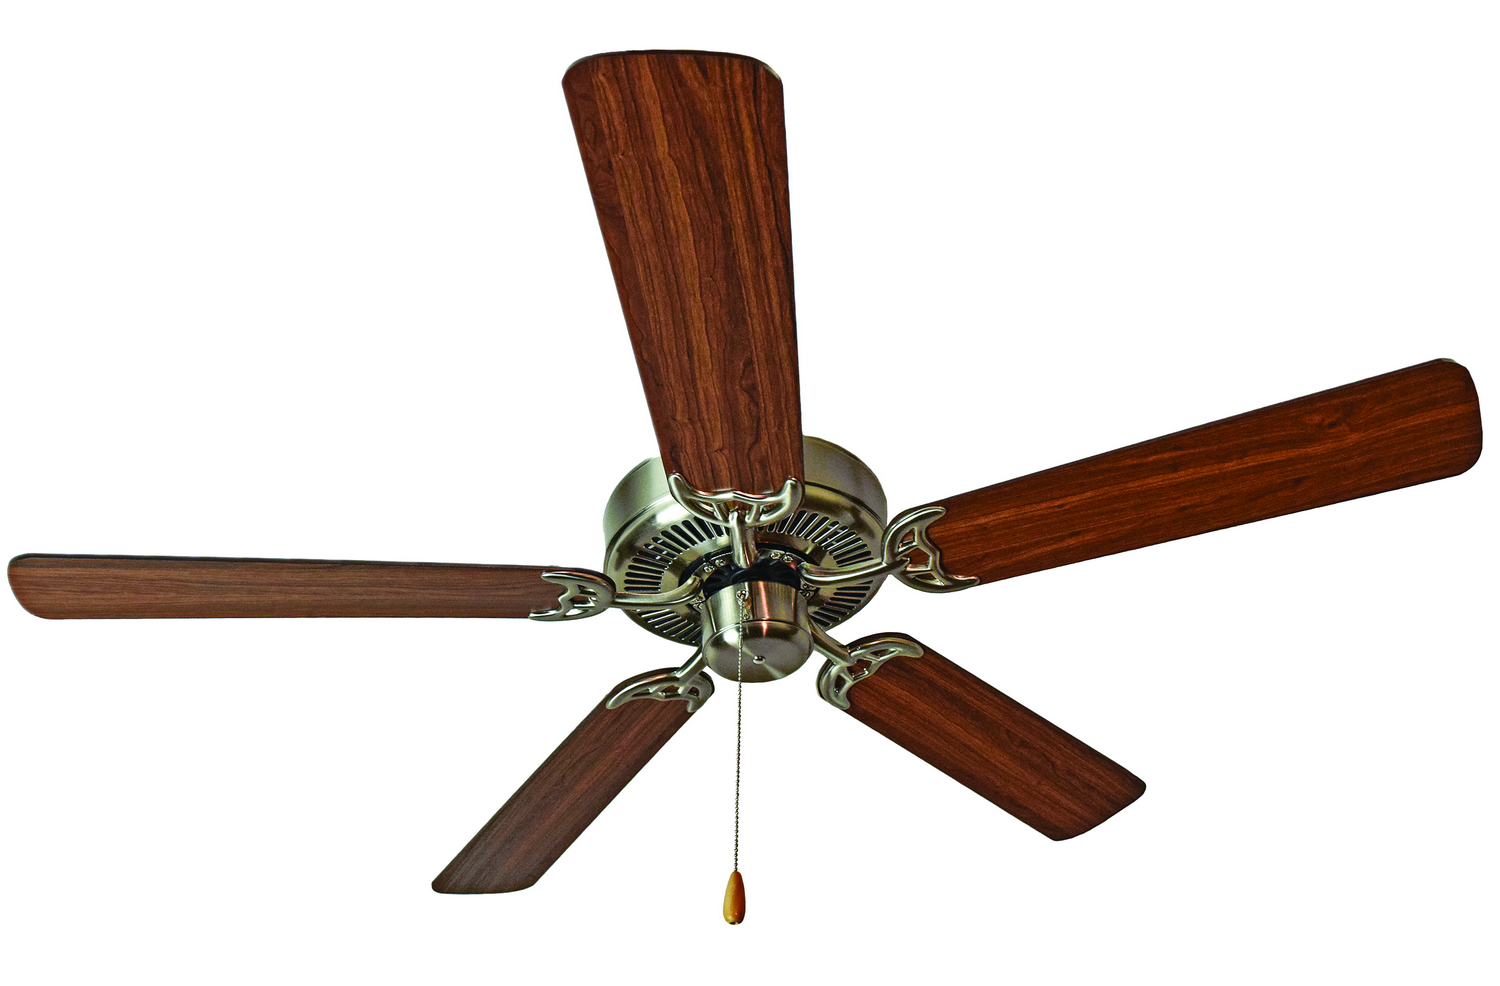 52 inchCeiling Fan from the Basic Max collection by Maxim 89905SNWP